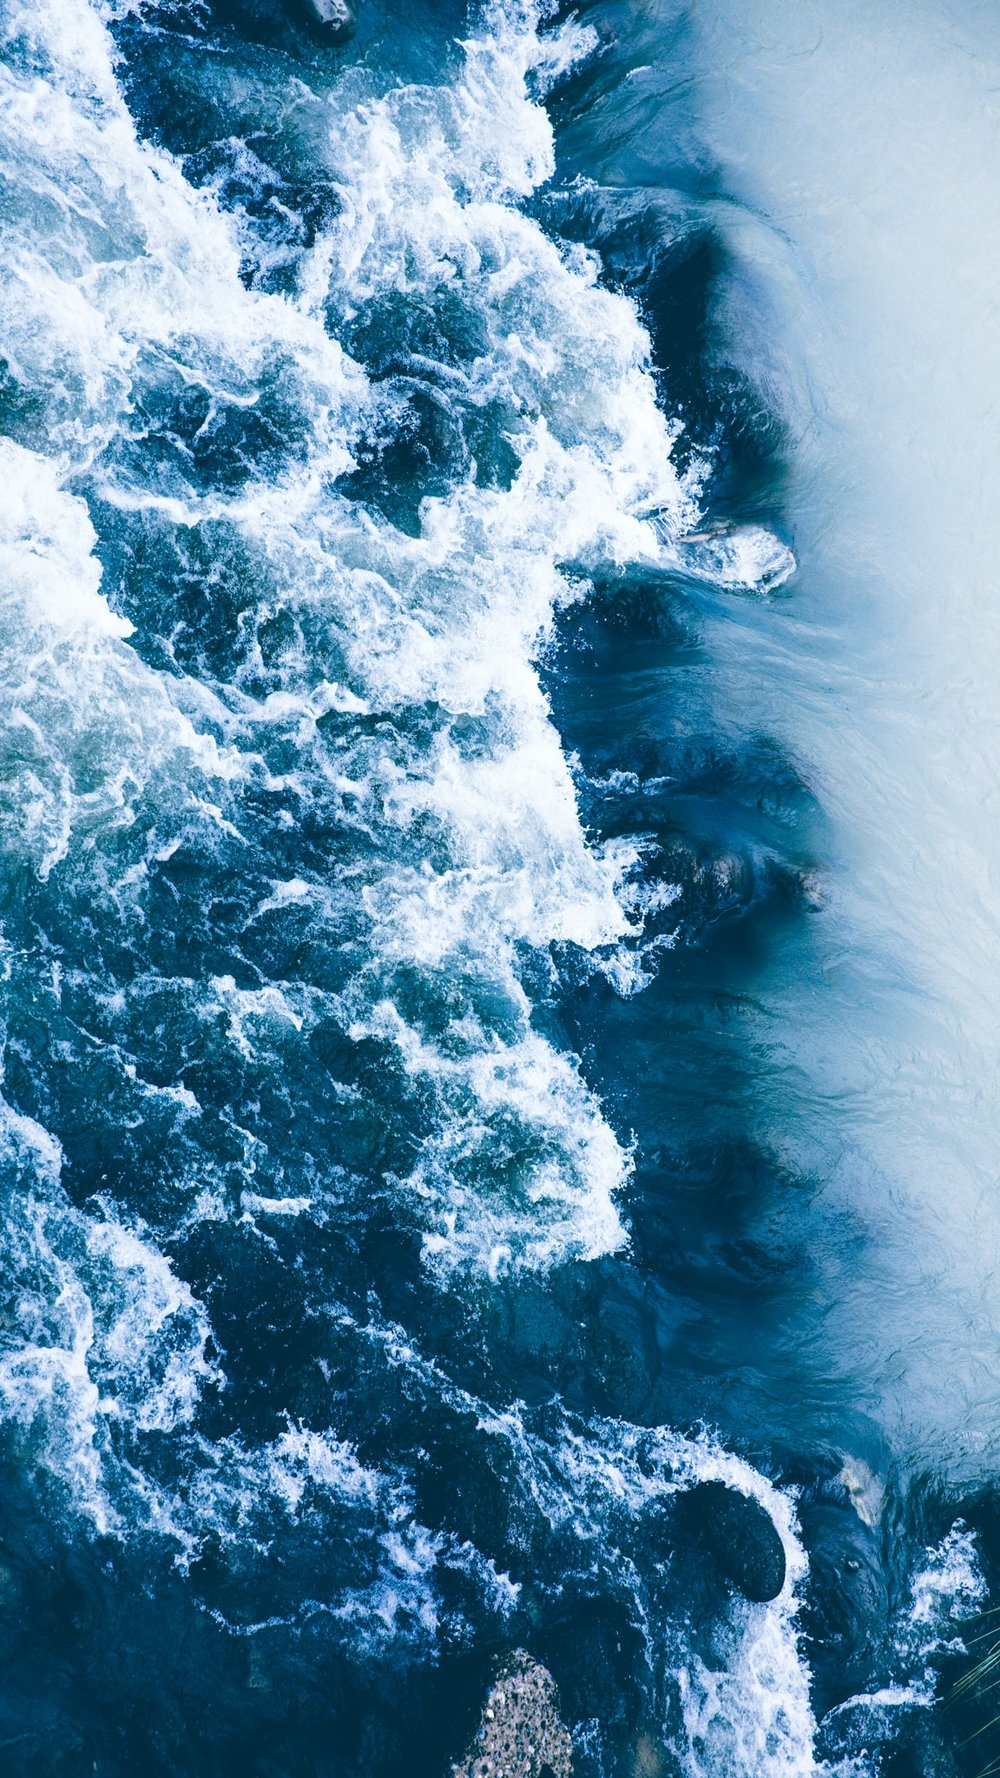 ocean-waves-shot-by-aly-mananquil